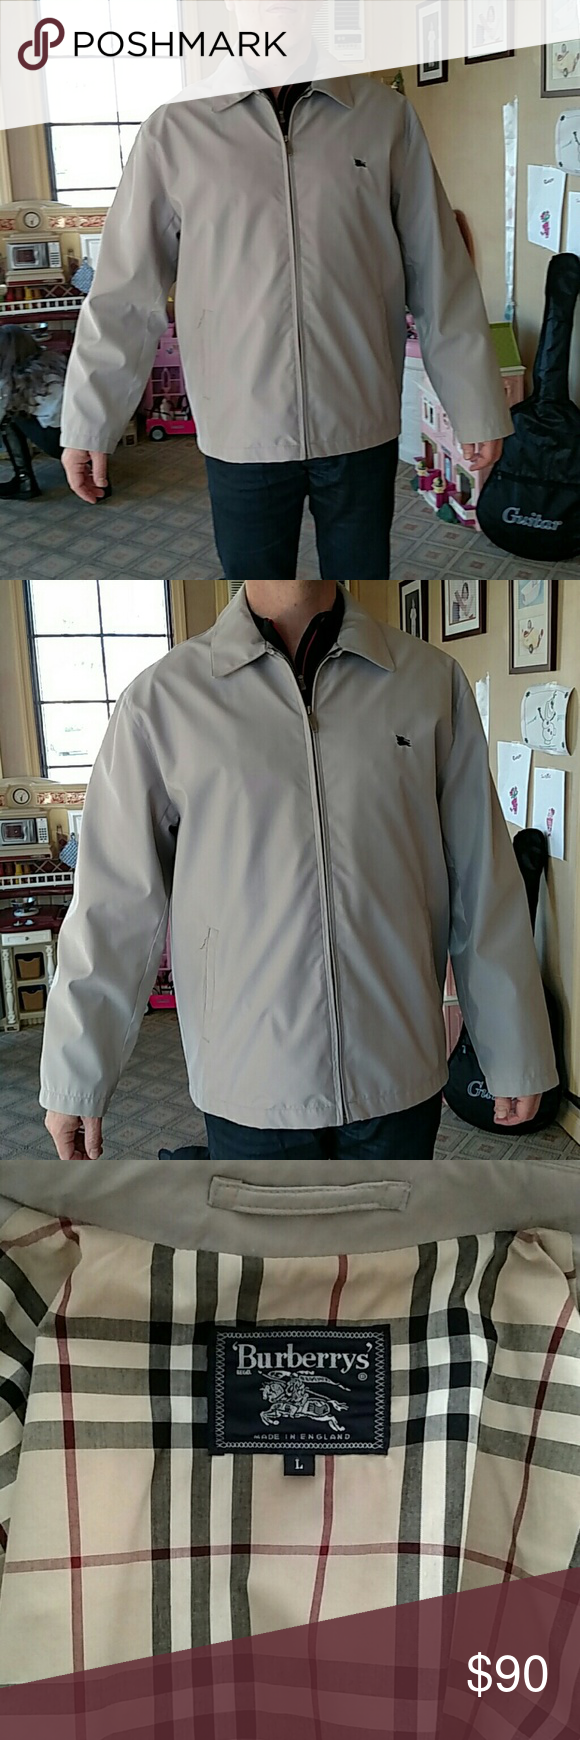 Burberrys' Mens Lightweight Jacket Great condition, sweet jacket Burberry Jackets & Coats Lightweight & Shirt Jackets